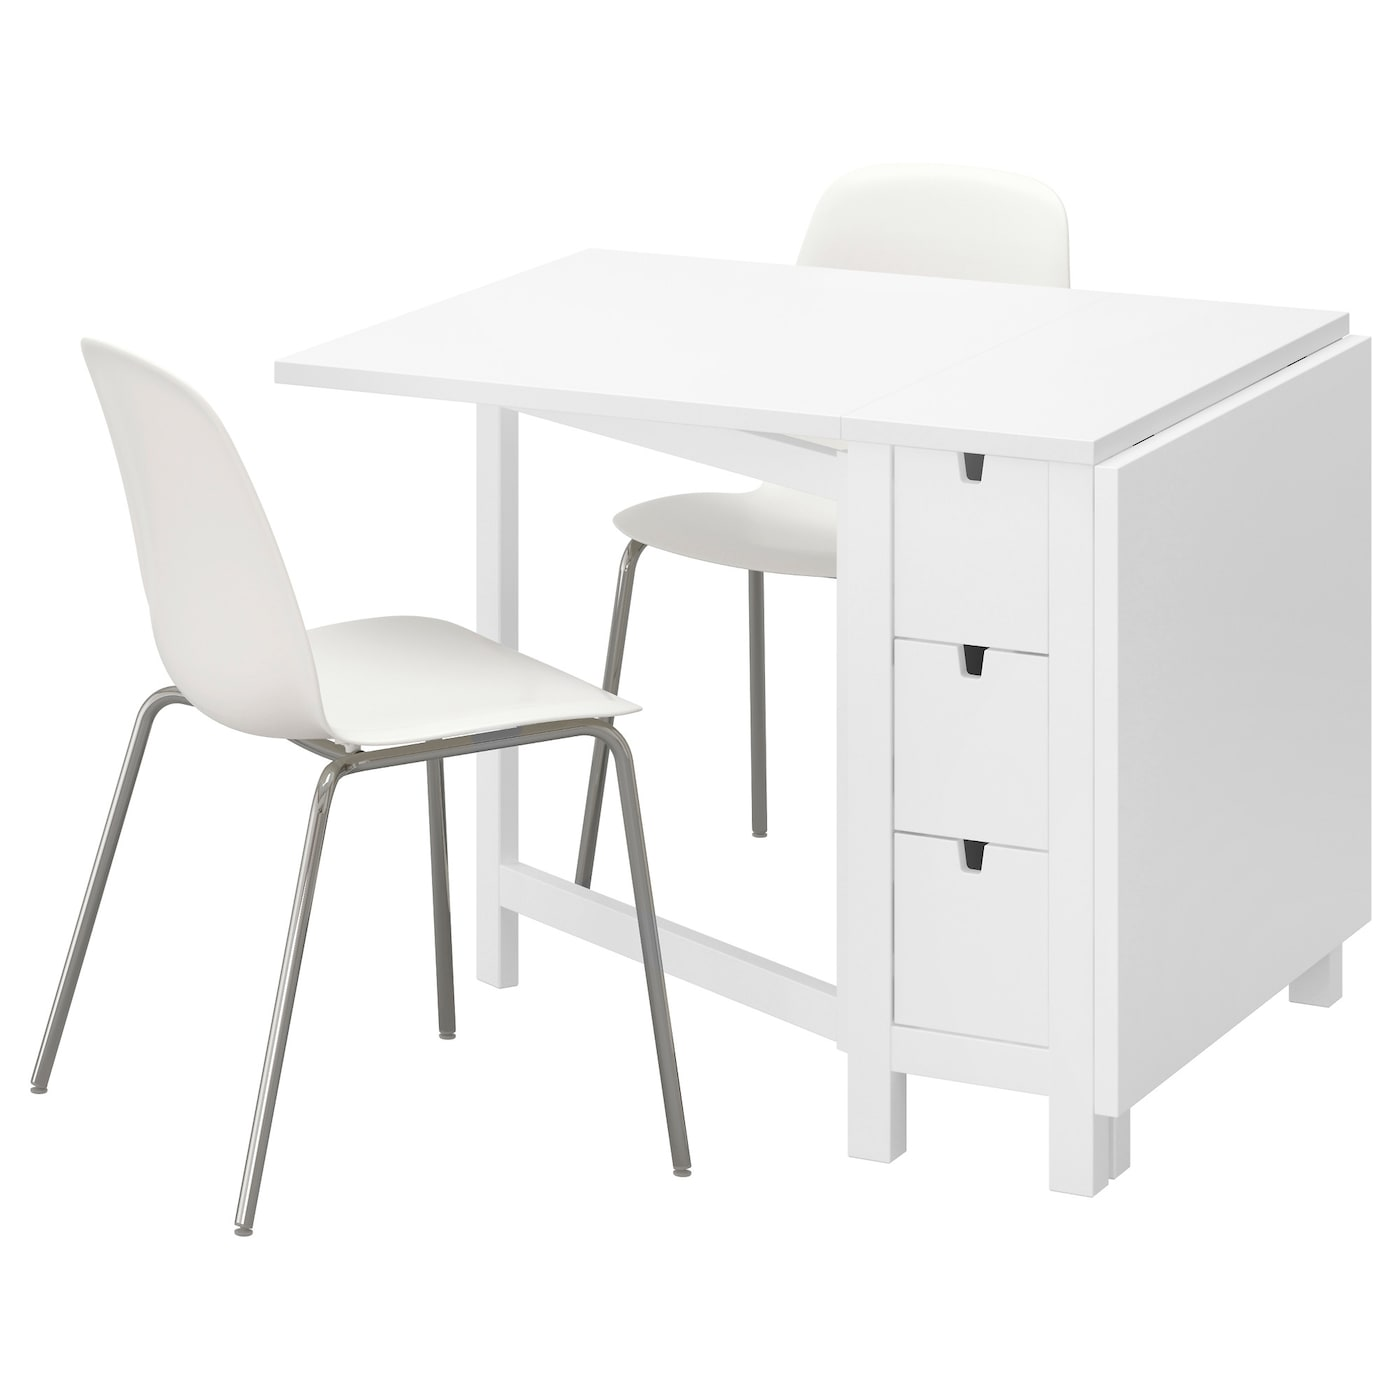 norden leifarne table et 2 chaises blanc blanc chrom 89. Black Bedroom Furniture Sets. Home Design Ideas